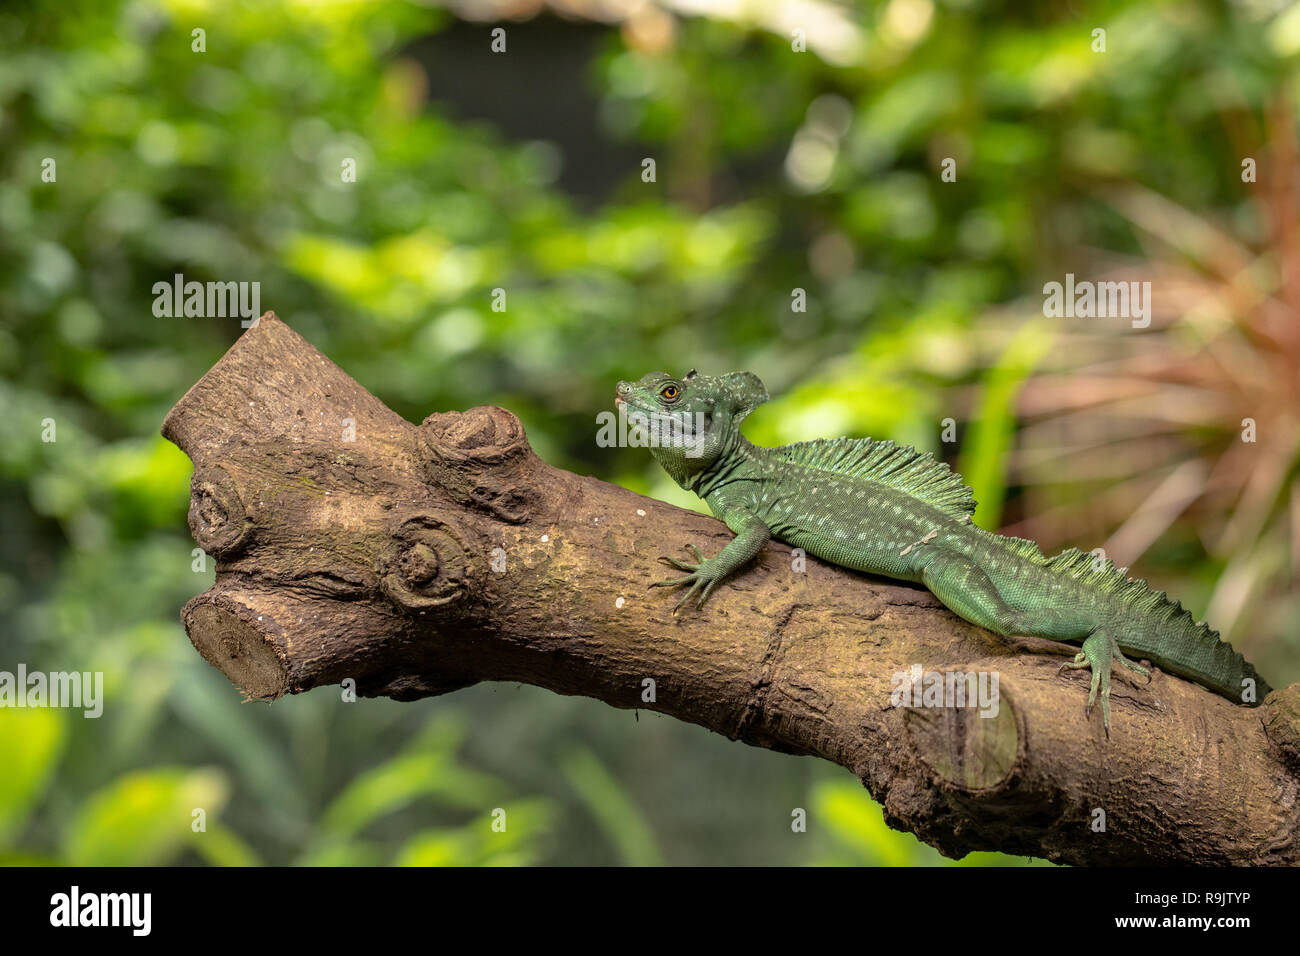 Male Plumed basilisk, Basiliscus plumifrons, also known as the green basilisk. Stock Photo